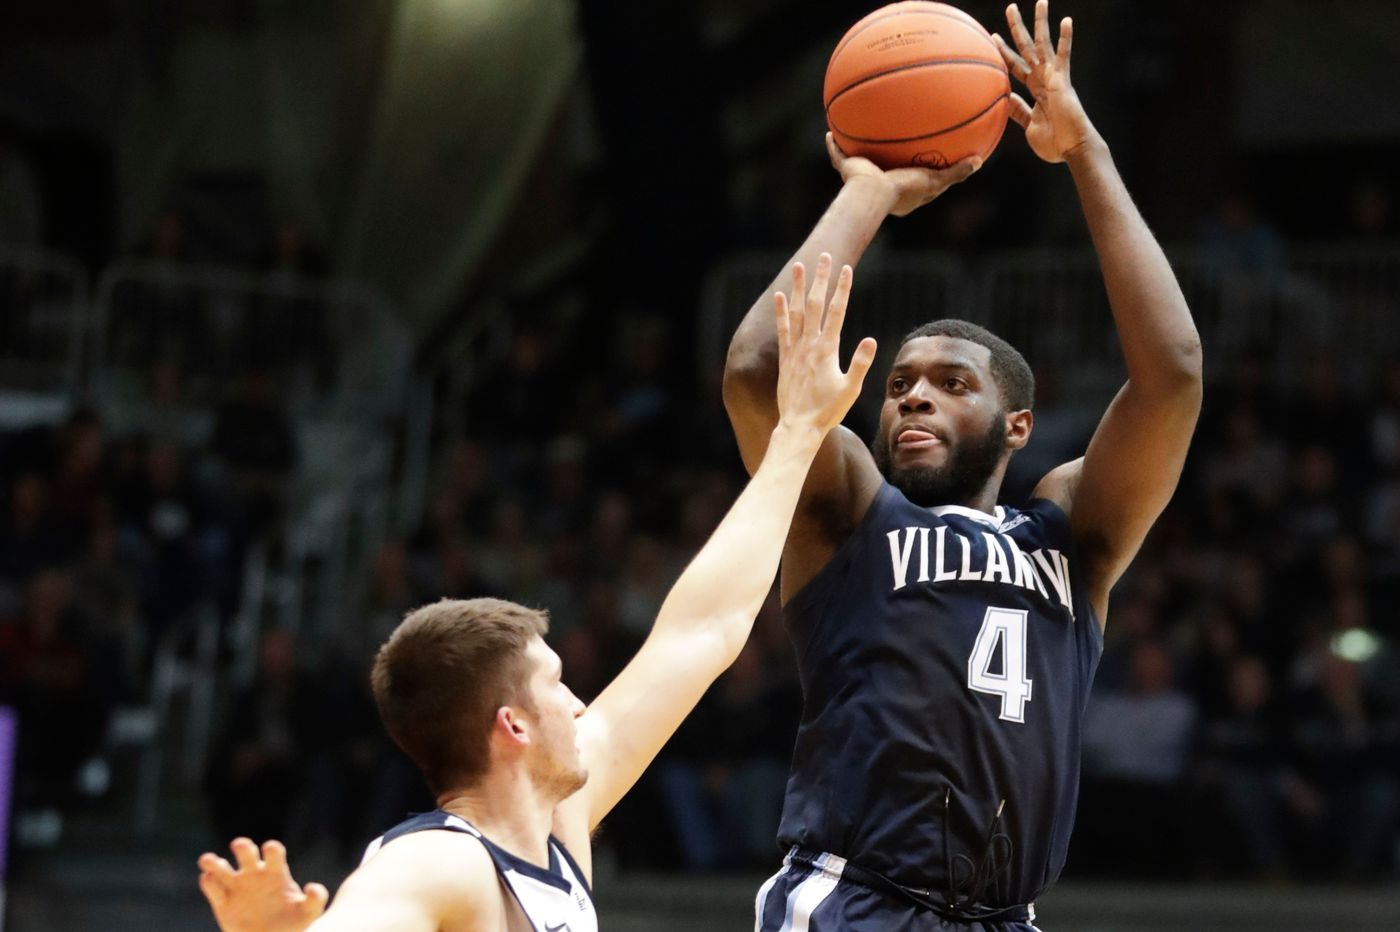 Villanova uses three-pointers and defense to defeat Butler